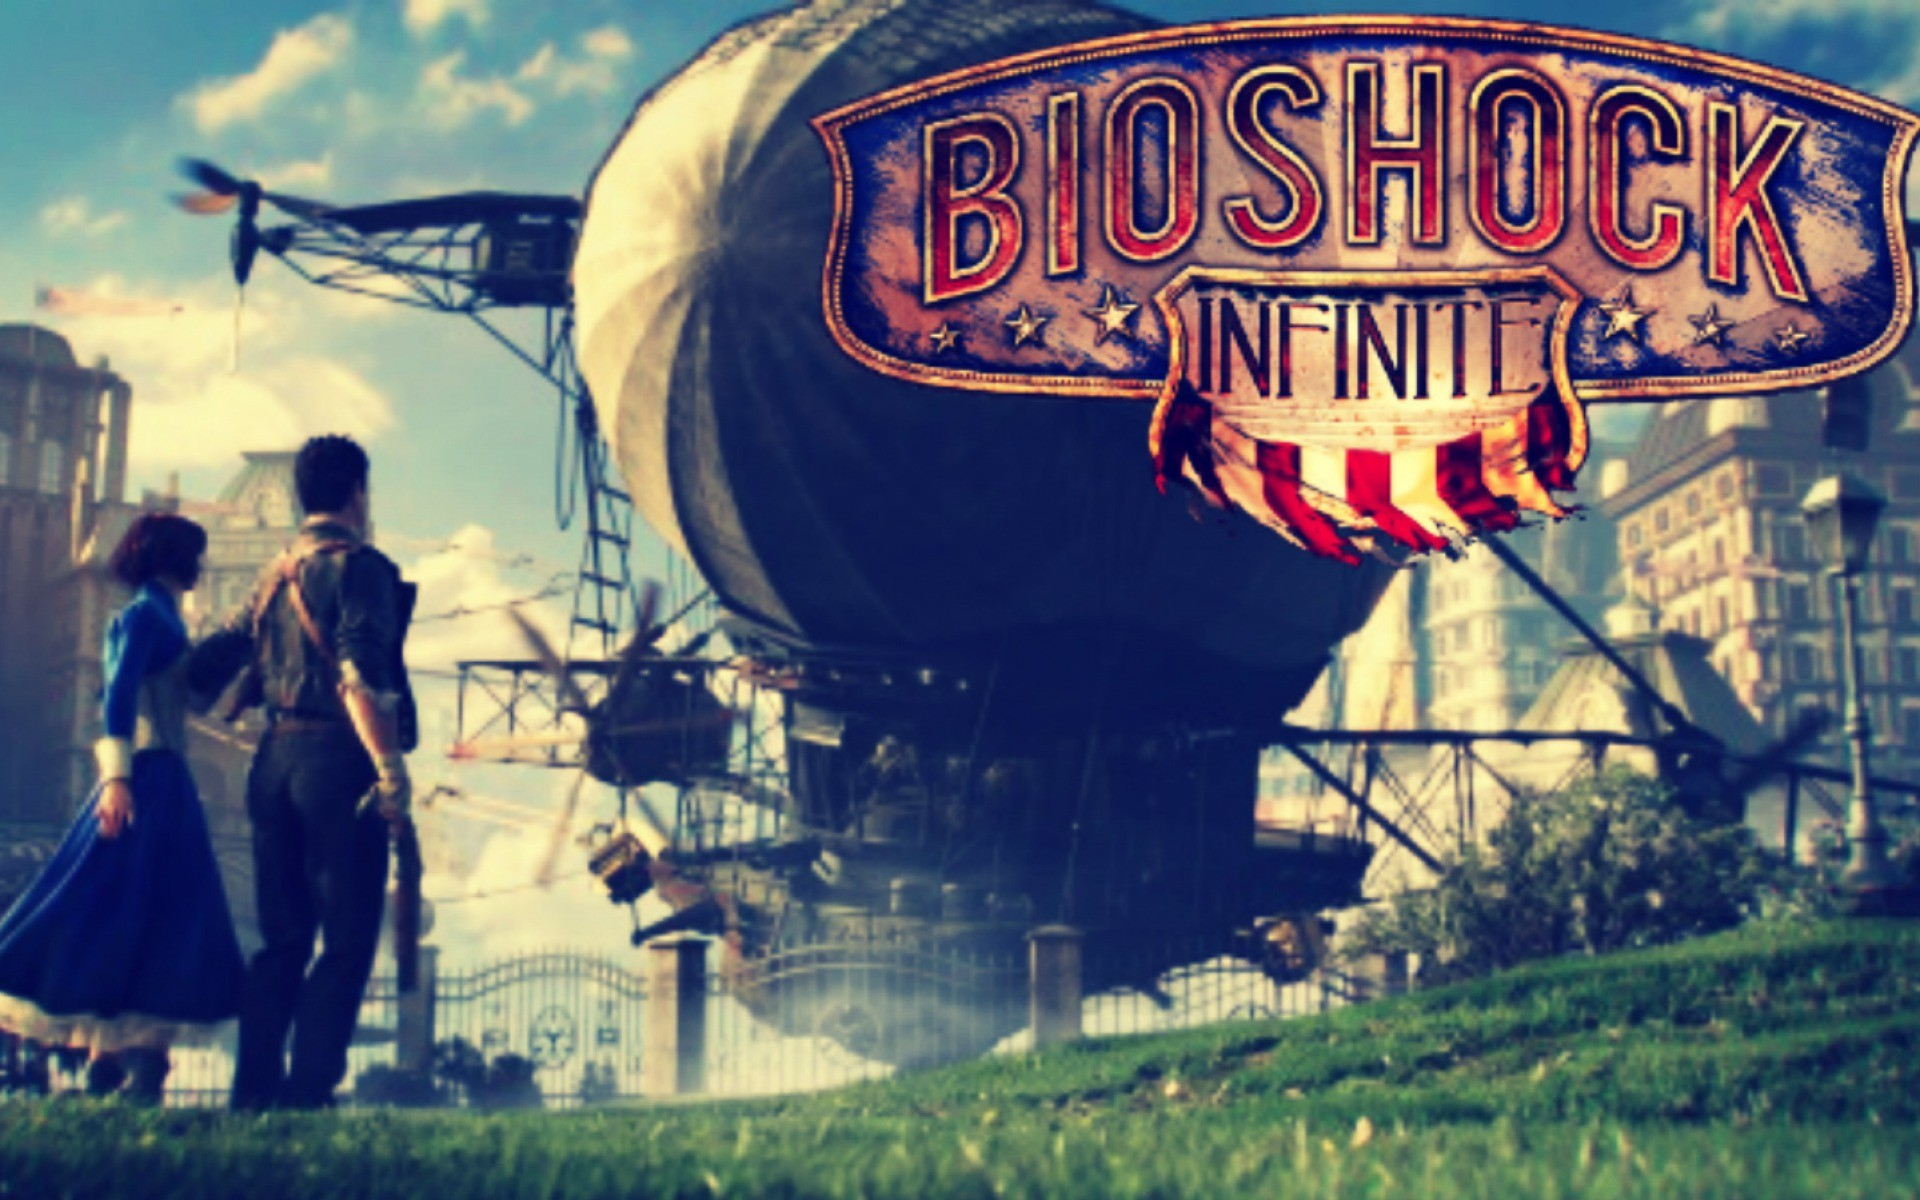 Bioshock Infinite Wallpapers HD 5F5WDAX   4USkY 1920x1200